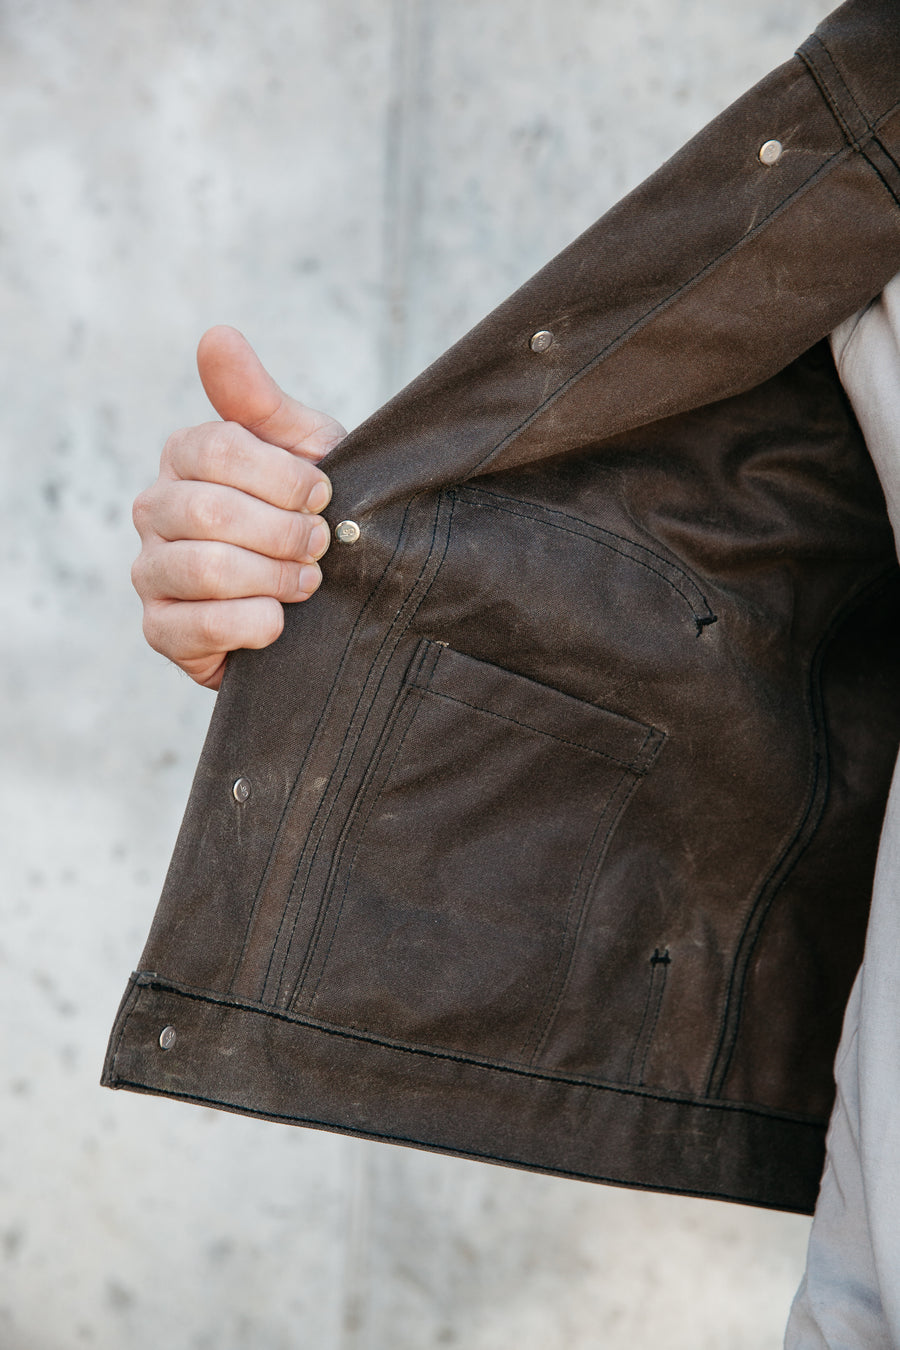 Wayman Jacket - 17oz Brown Waxed - PREORDER - Ships Feb. 2021